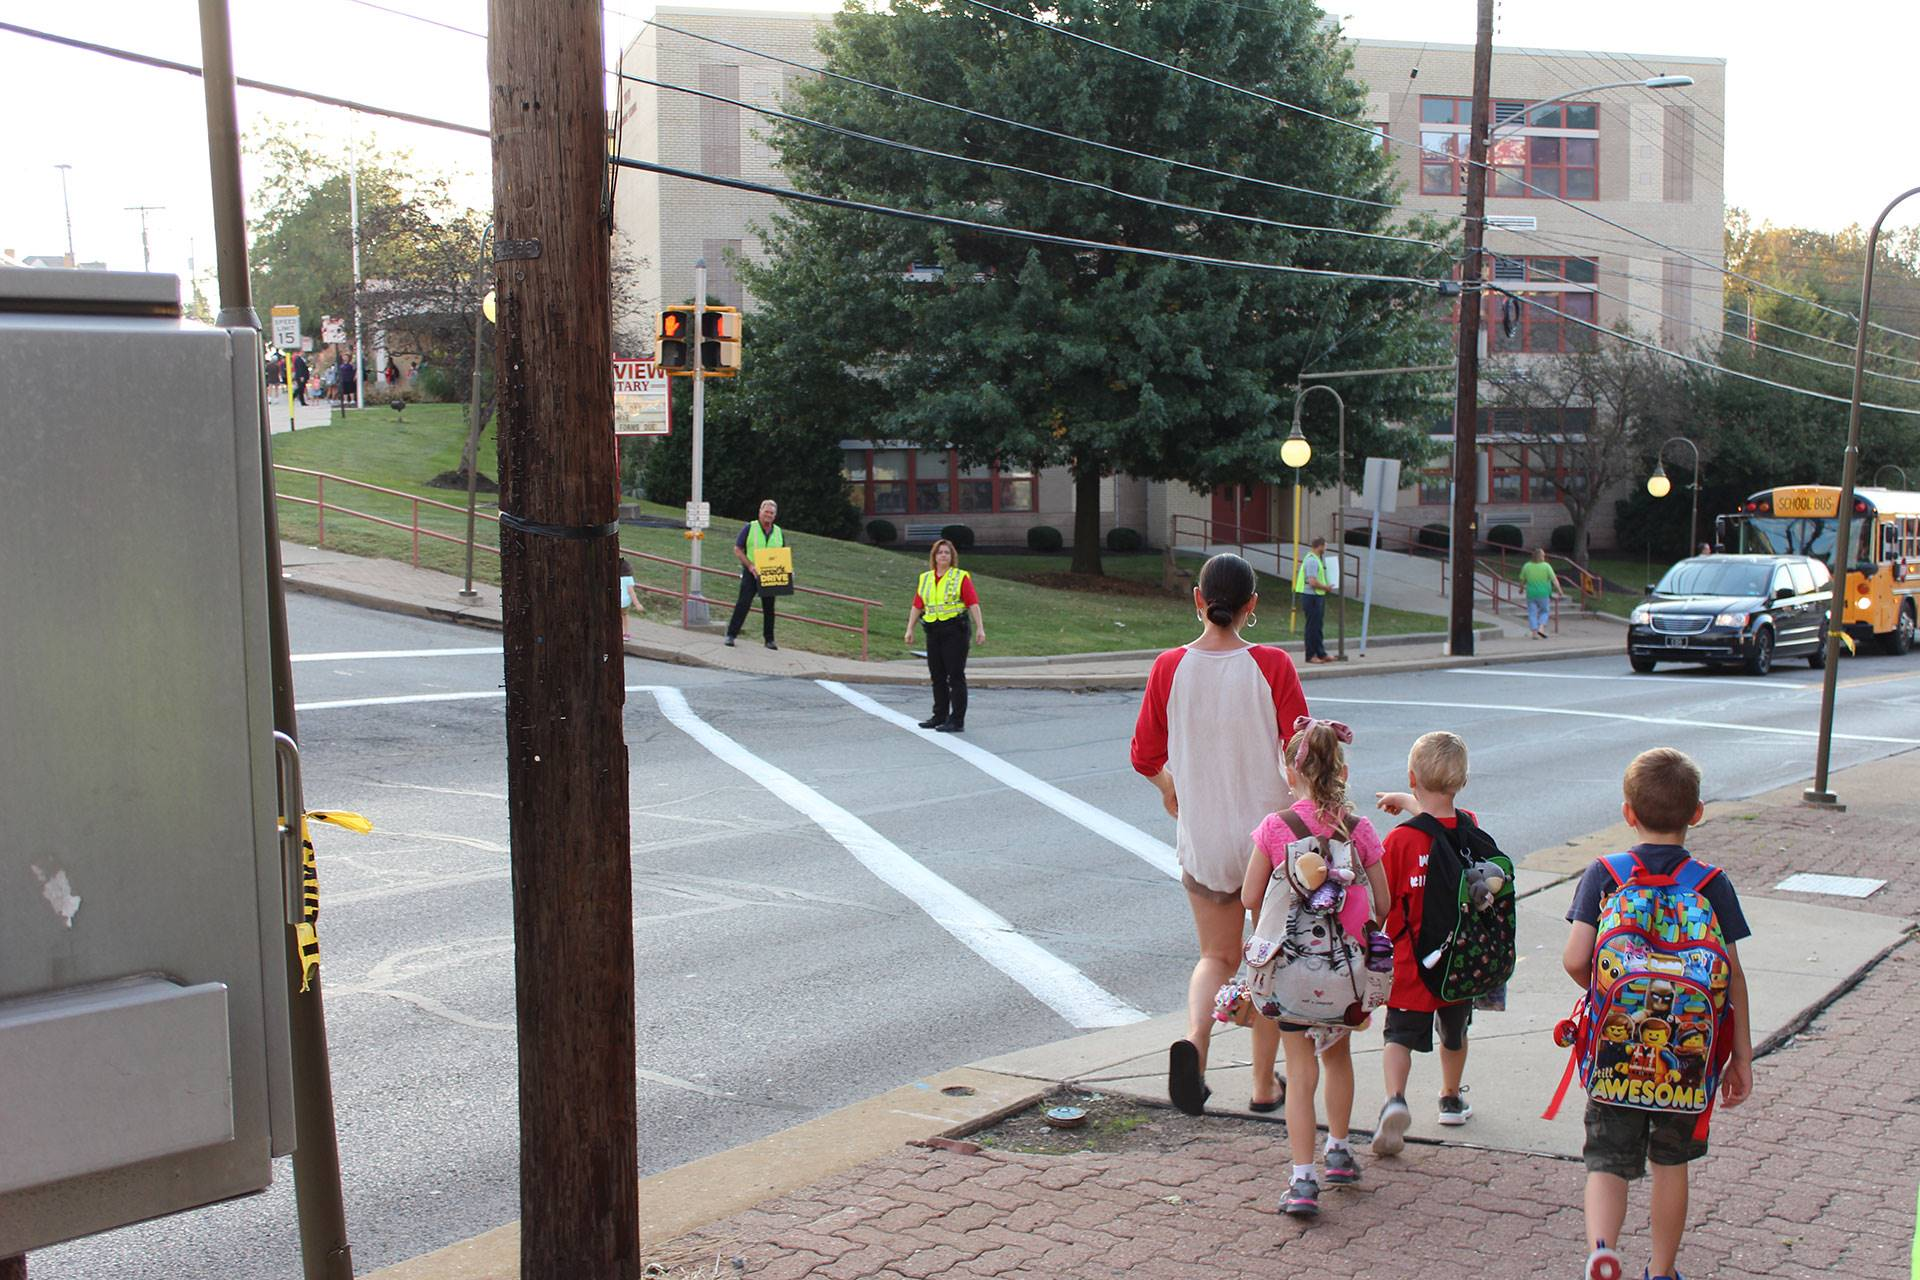 Crossing guards prepare to let a family cross the street at West View Elementary School